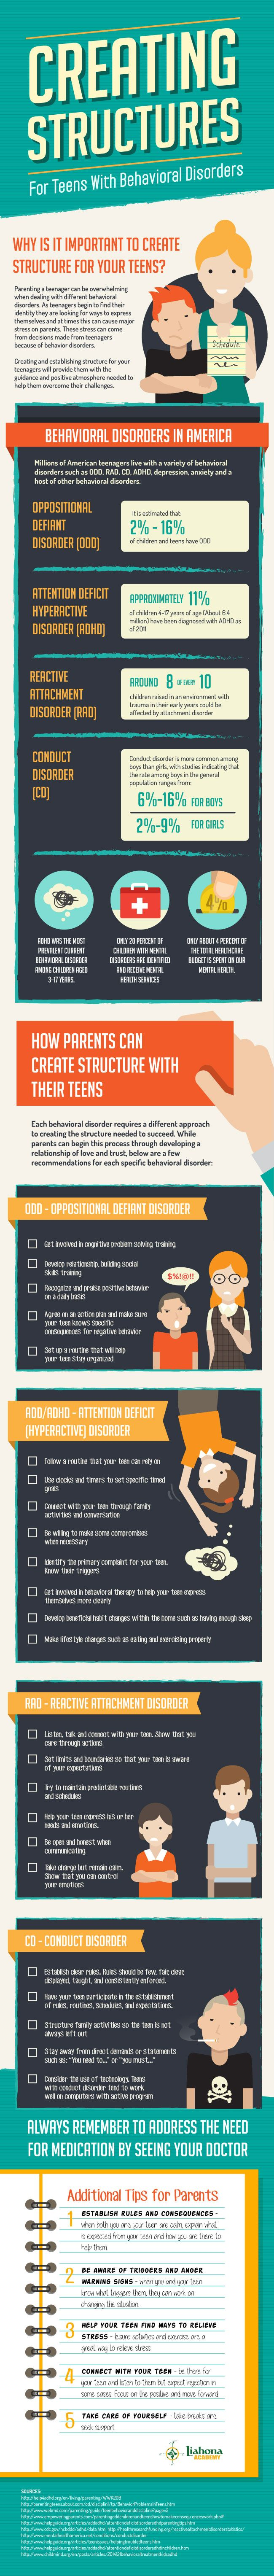 Creating Structure For Teens With Behavioral Disorders #Infographic